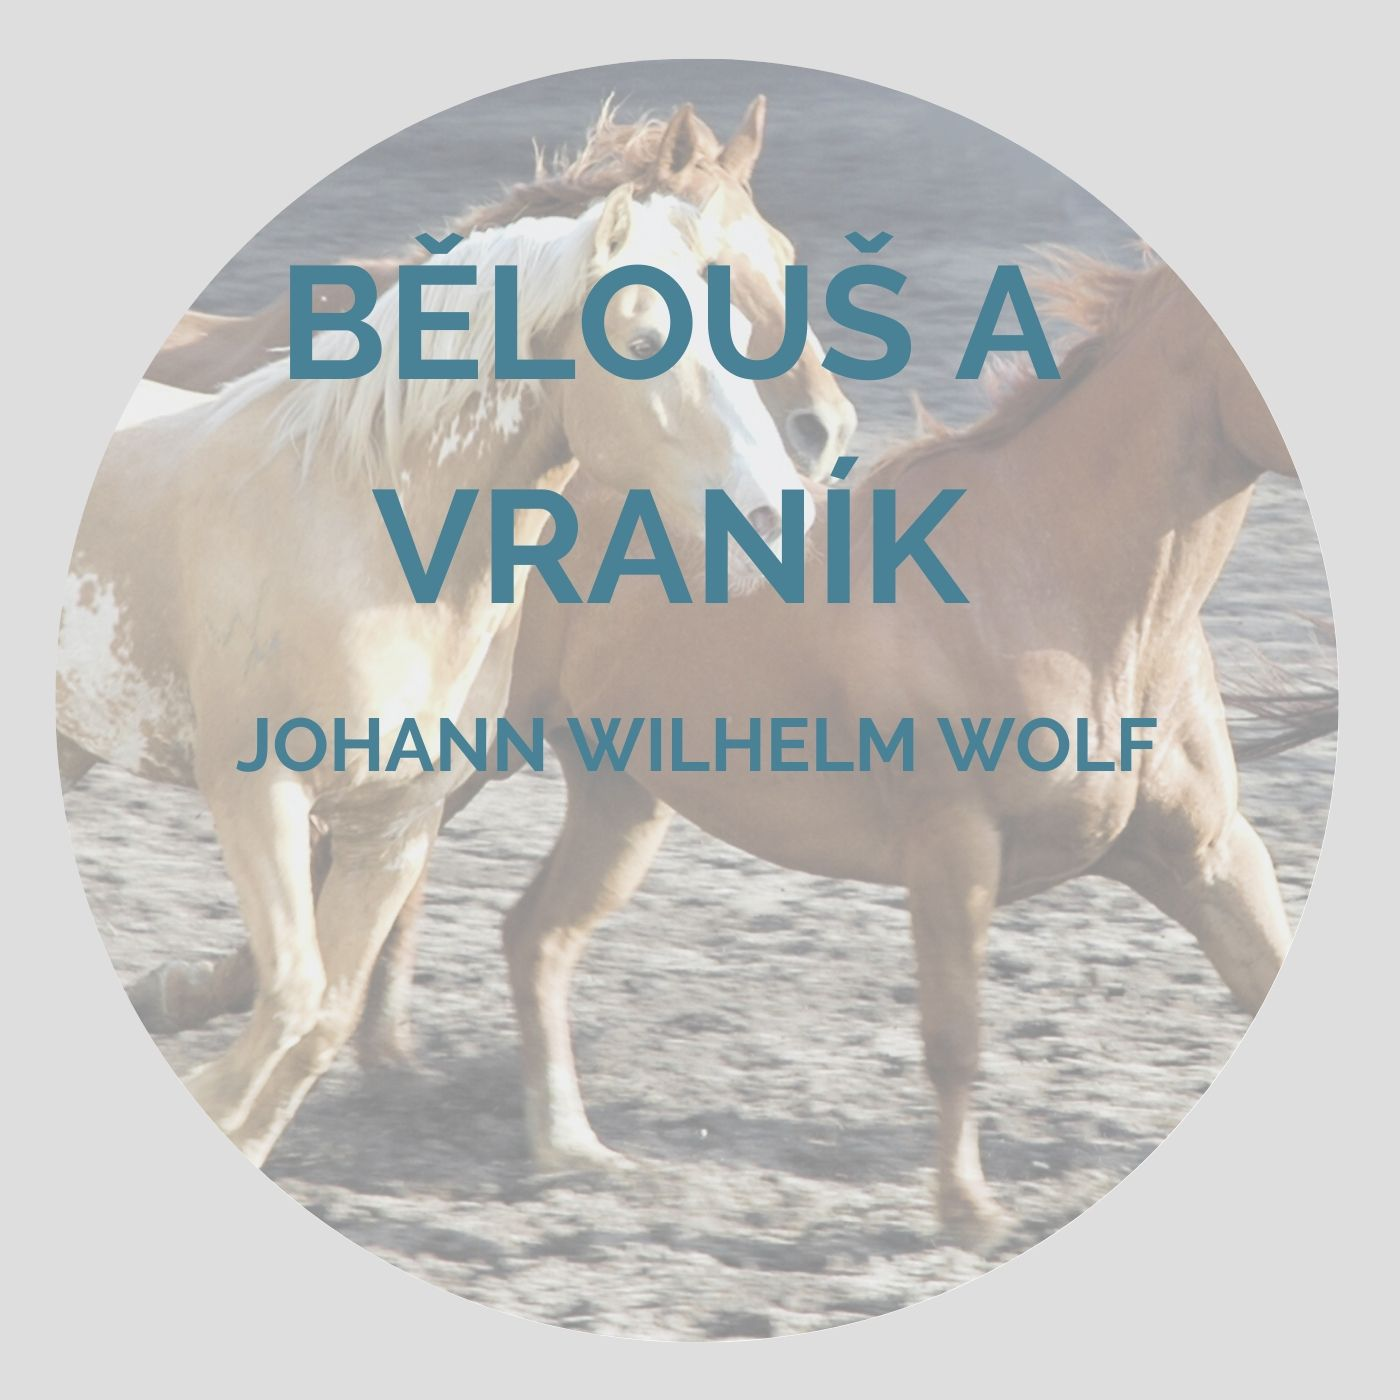 belous a vranik